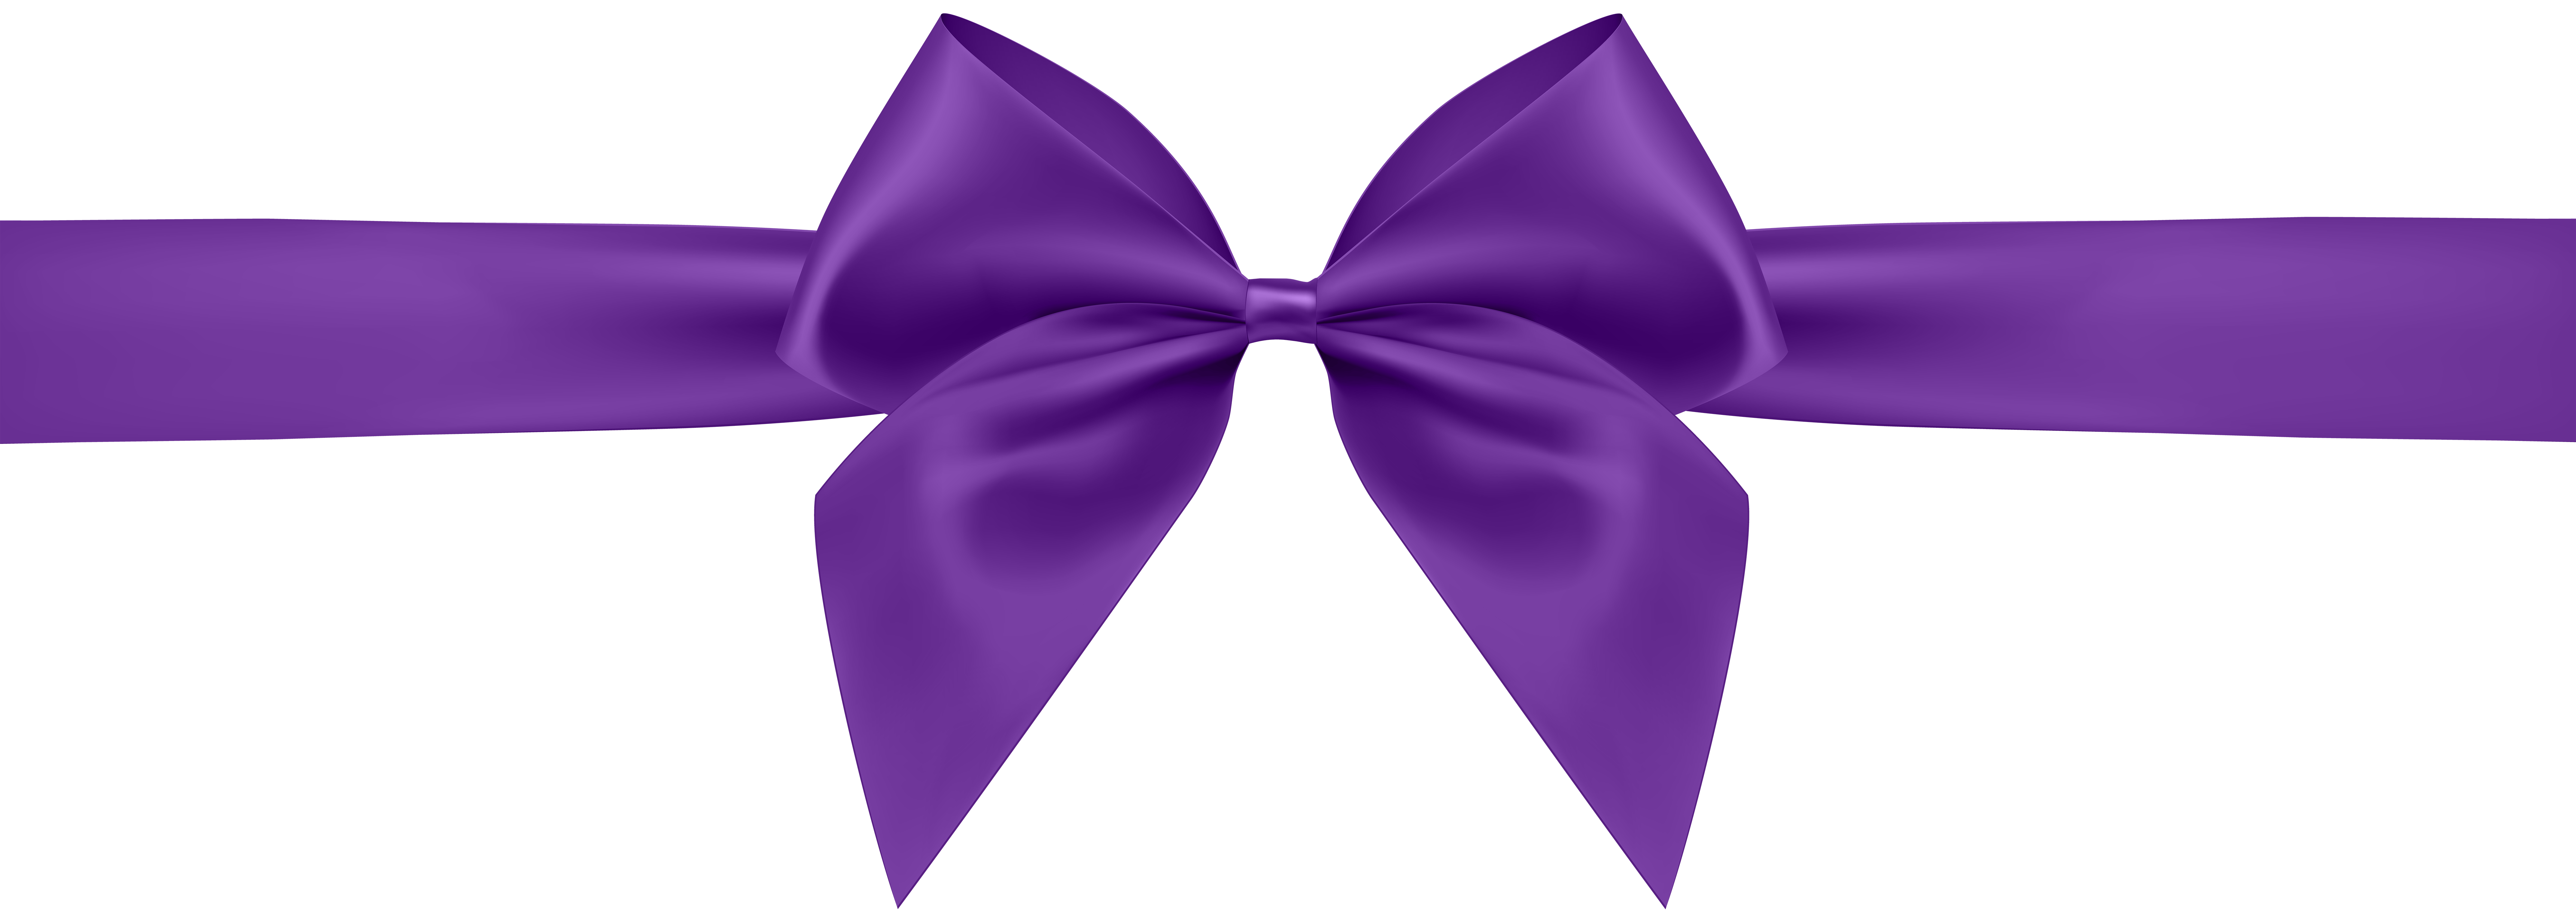 Purple Bow Transparent Clip Art Image.